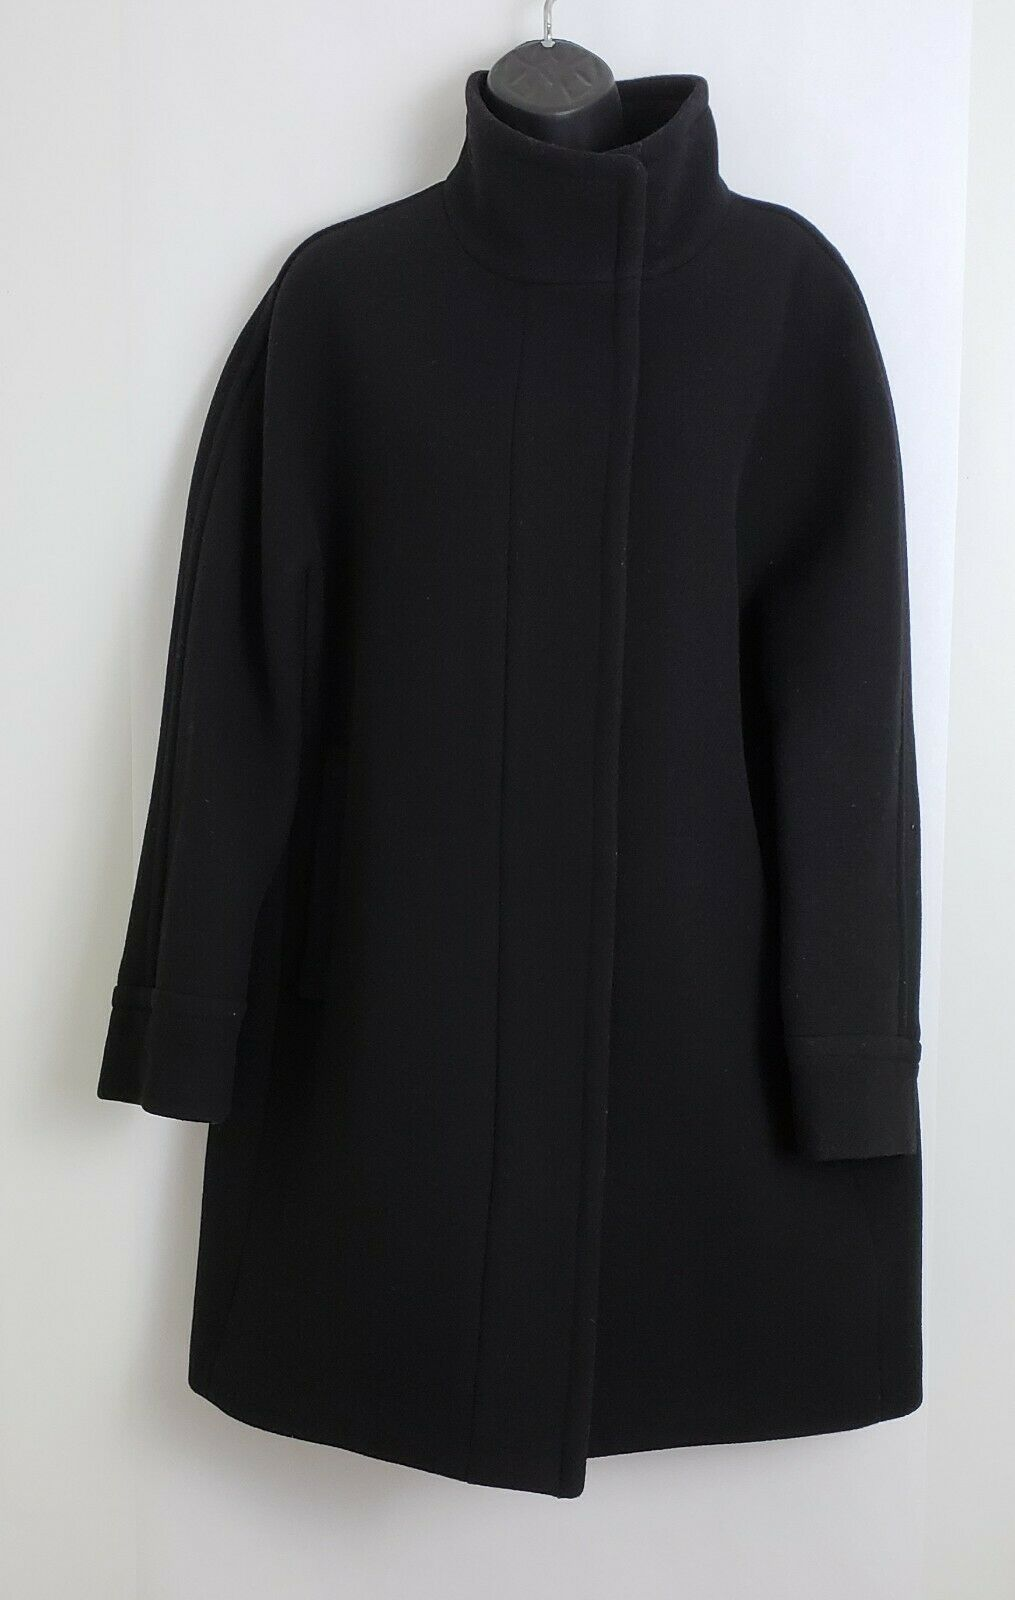 Primary image for J Crew Womens Coat Stadium Cloth by Nello Gori Black Zipper Wool Blend Size 14